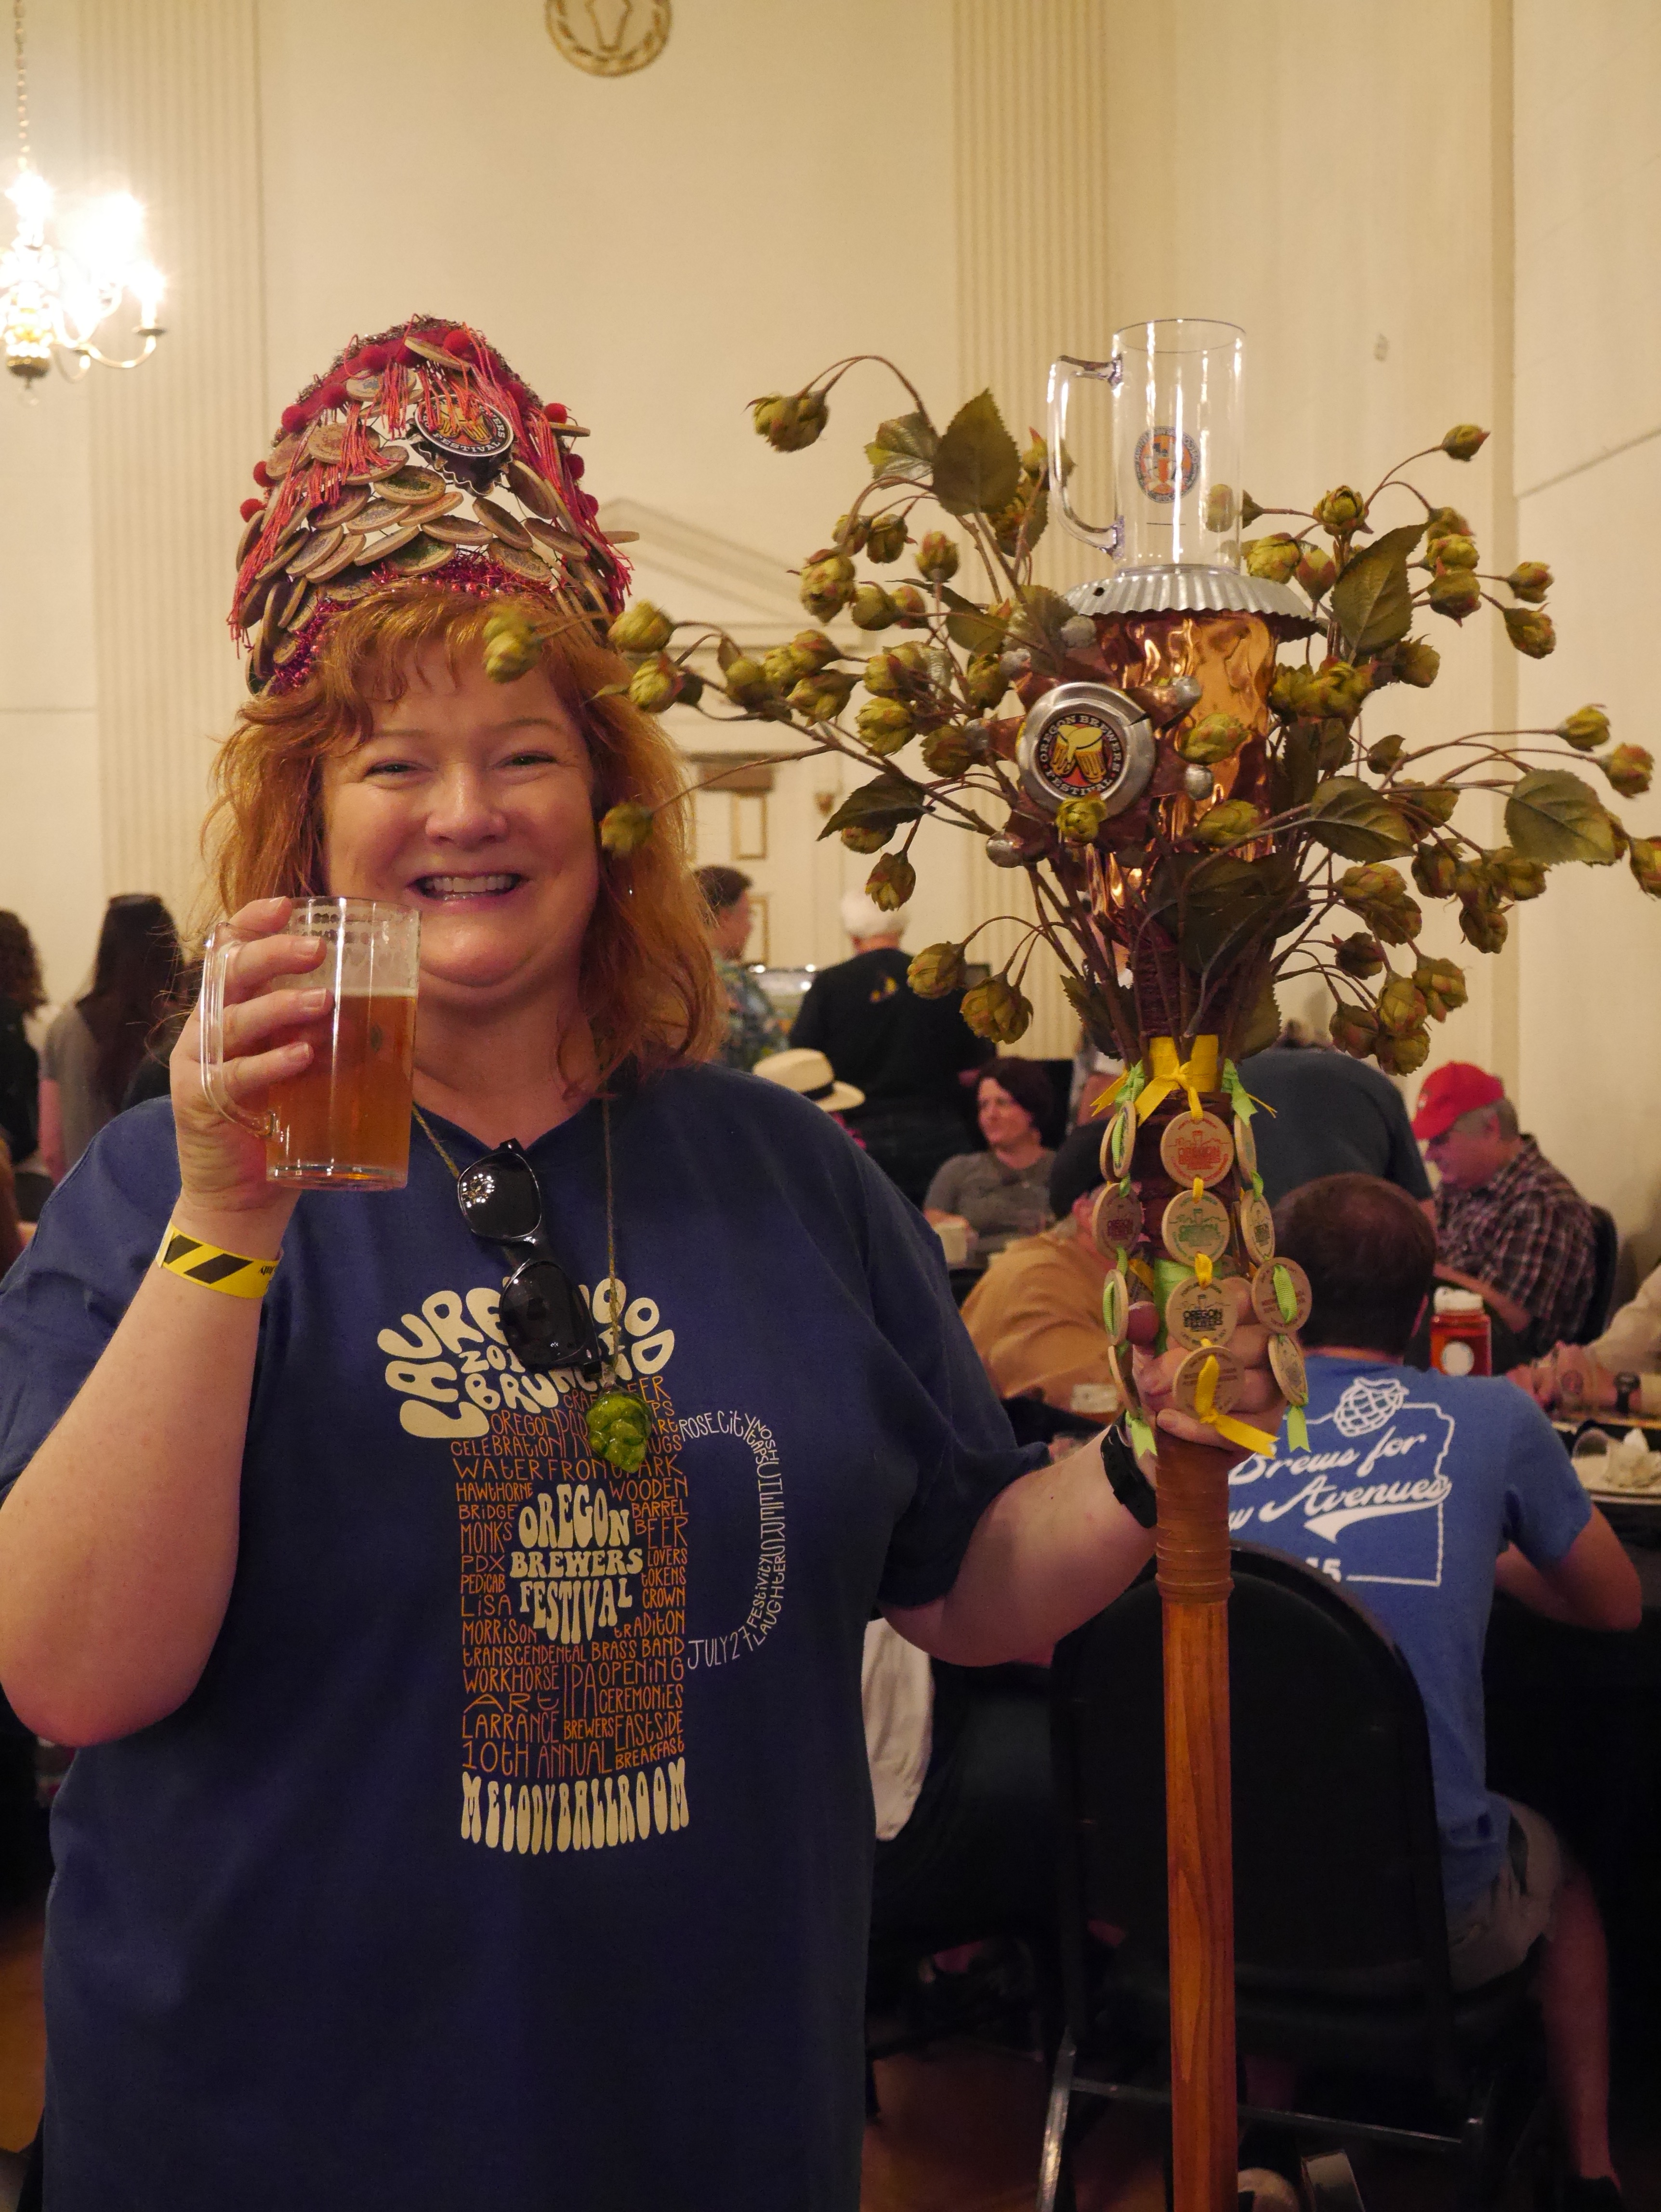 The 2016 Oregon Brewers Parade Grand Marshal, Lisa Morrison, at the 2016 Oregon Brewers Festival Brunch. (photo by Cat Stelzer)